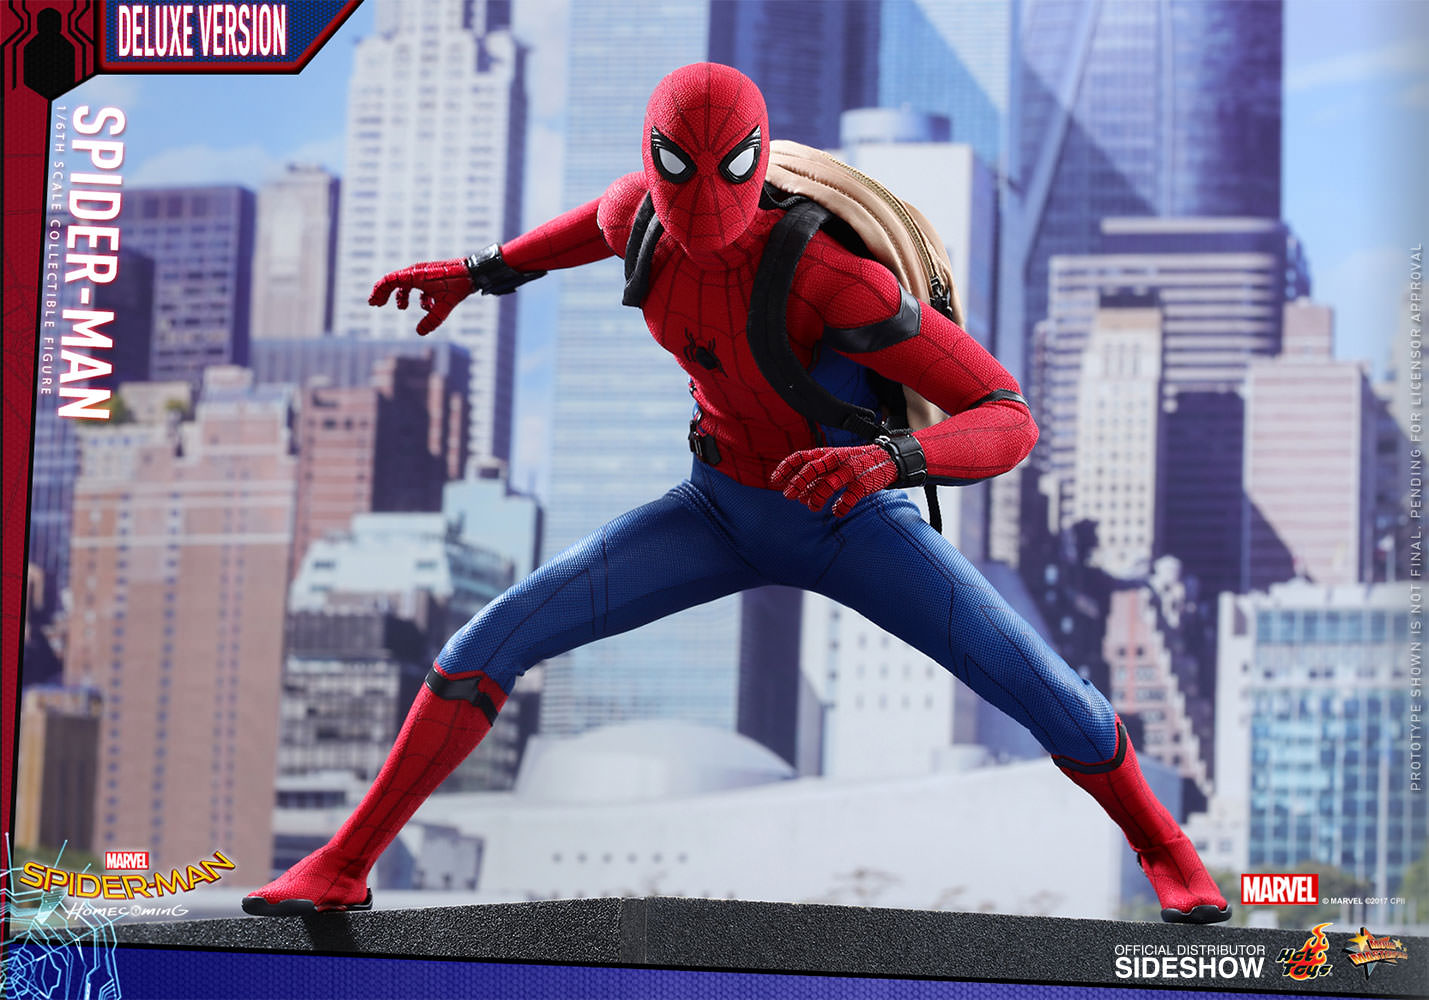 7209985b8b6 Marvel Spider-Man Deluxe Version Sixth Scale Figure by Hot T ...